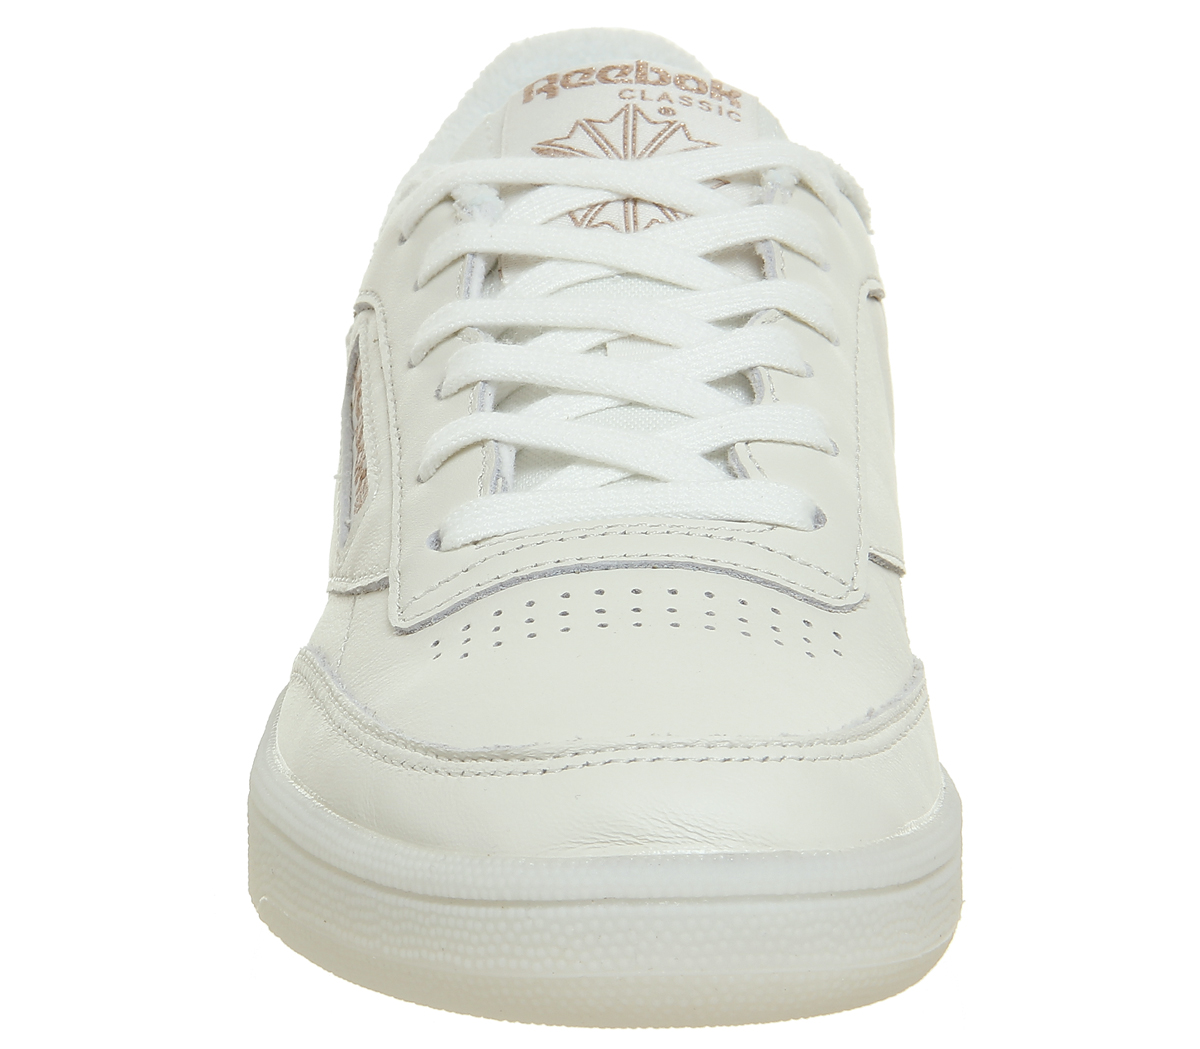 16e6e2f6858d3 Sentinel Womens Reebok Club C 85 Trainers Chalk Rose Gold Exclusive  Trainers Shoes